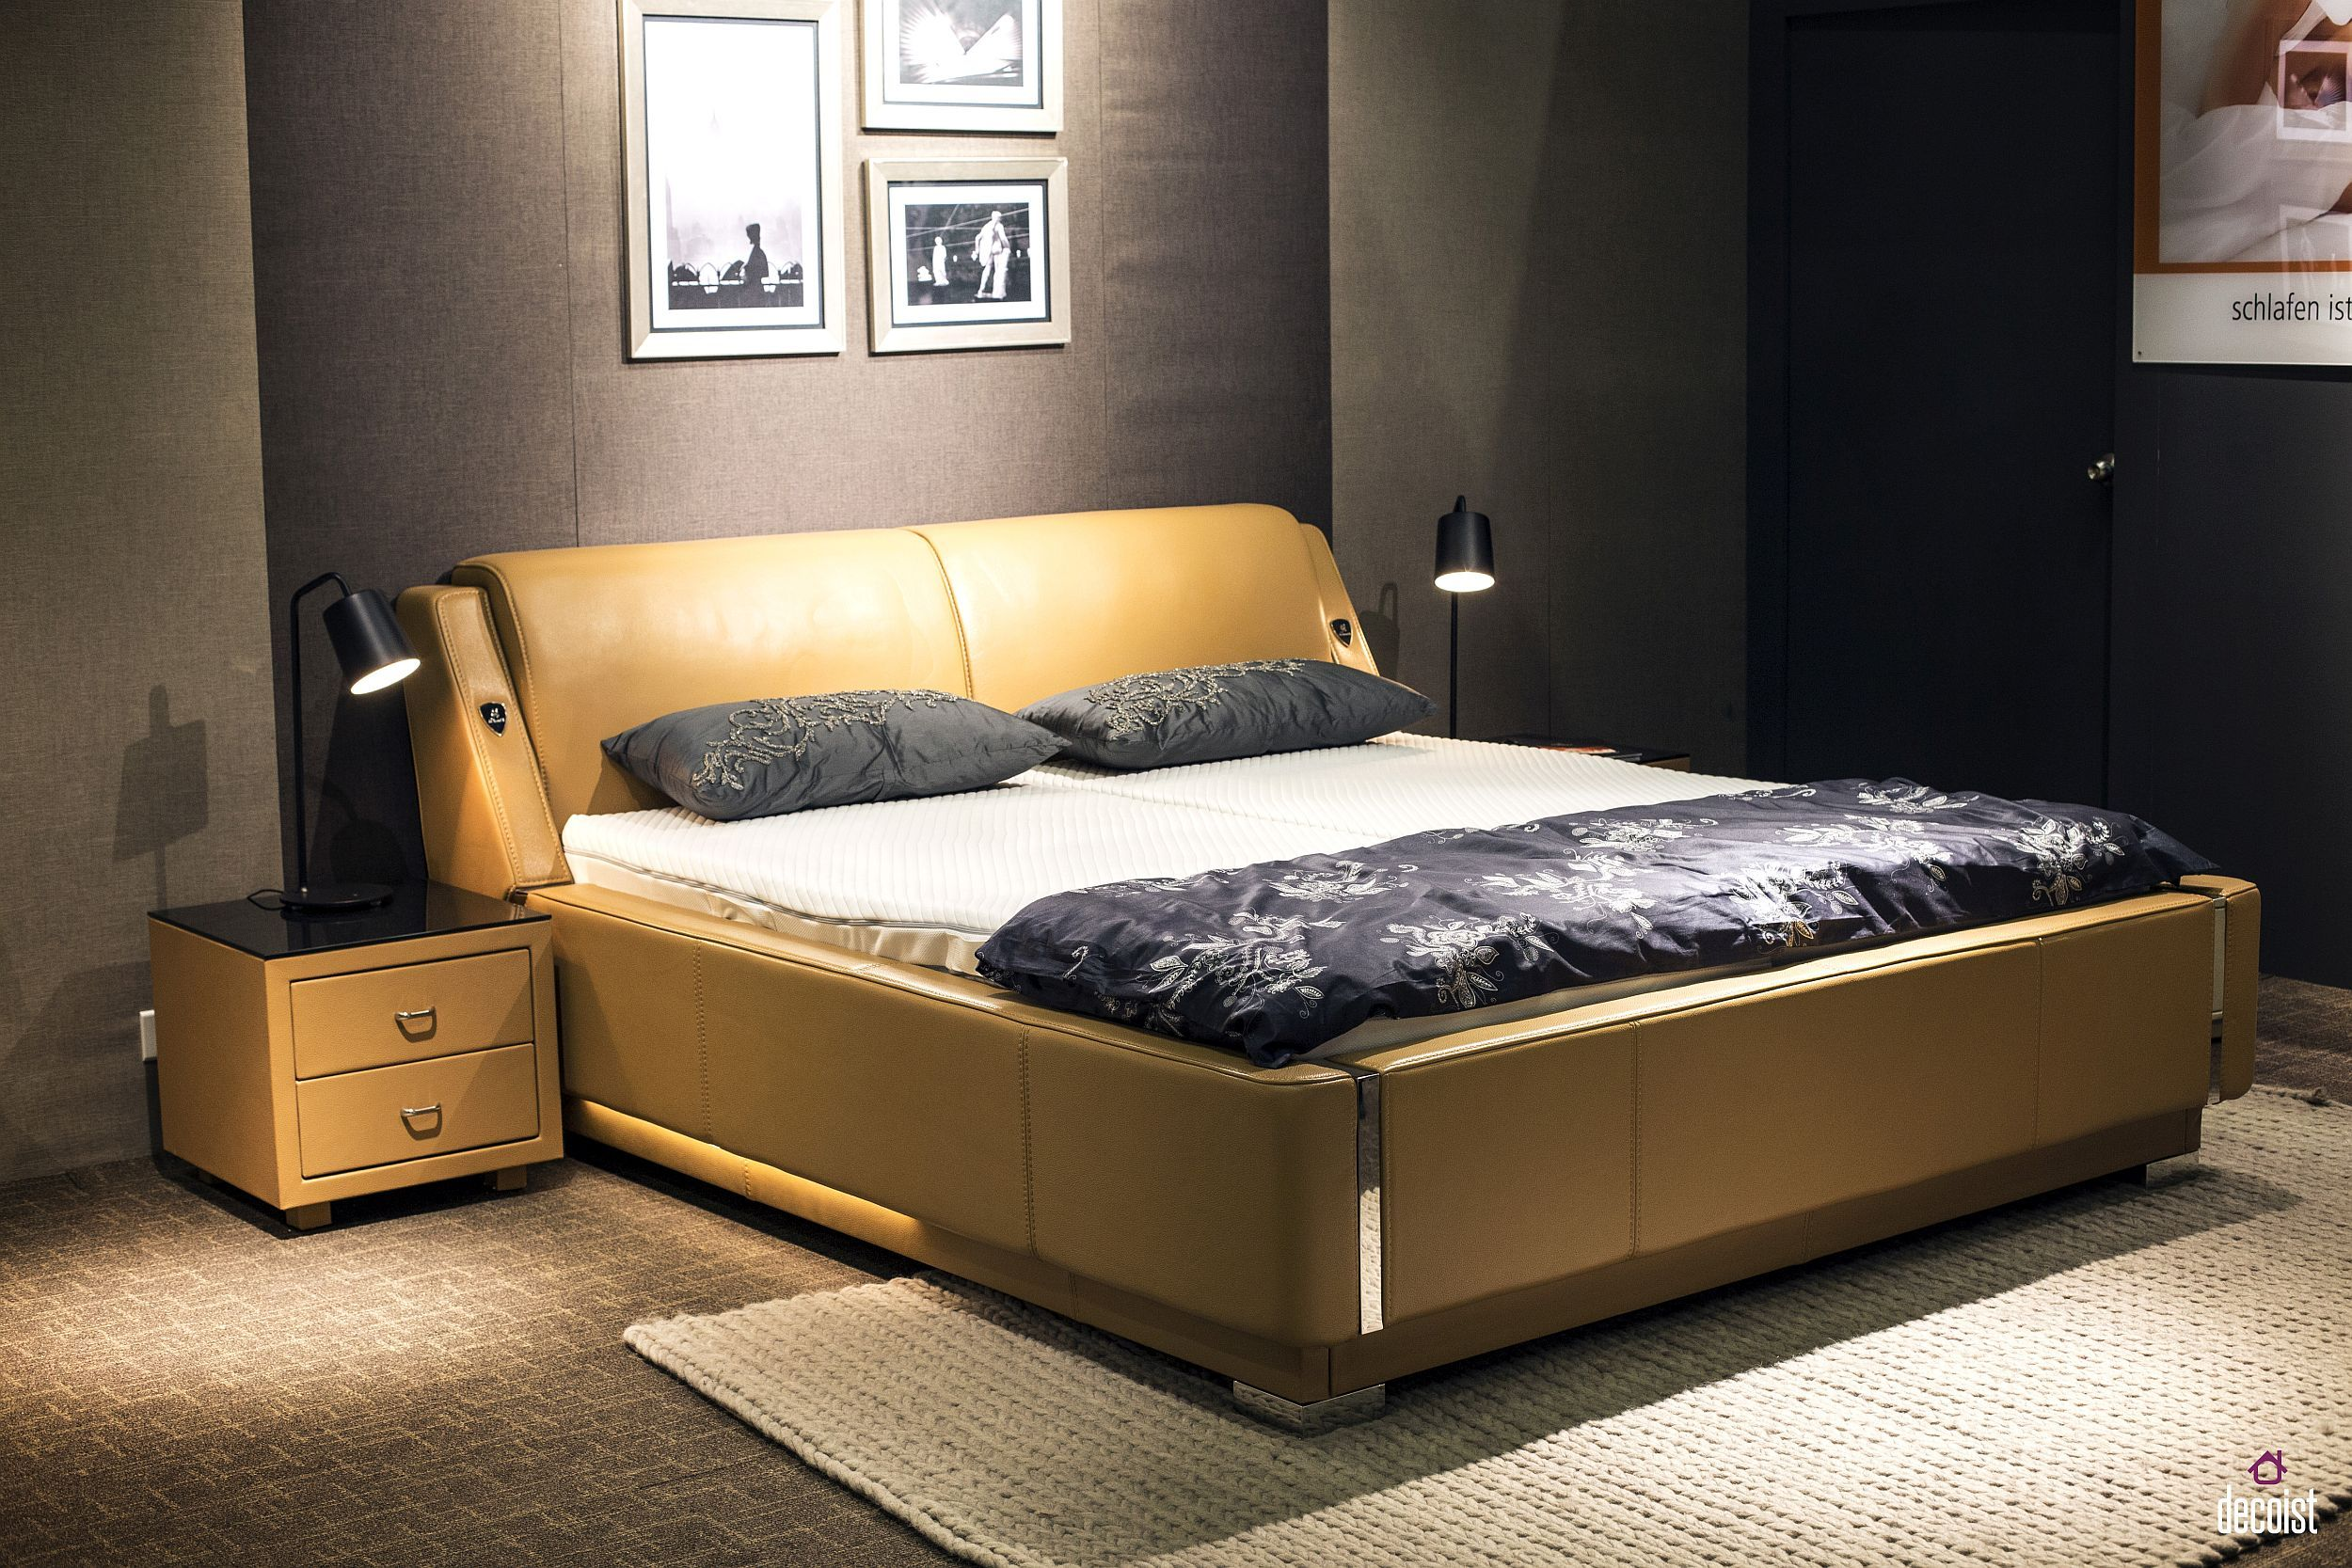 headboard storage adjustable bed king upholstered furniture headboards sunshiny hoxmse le designs ikea and for about wood ga beds picturesque wonderful